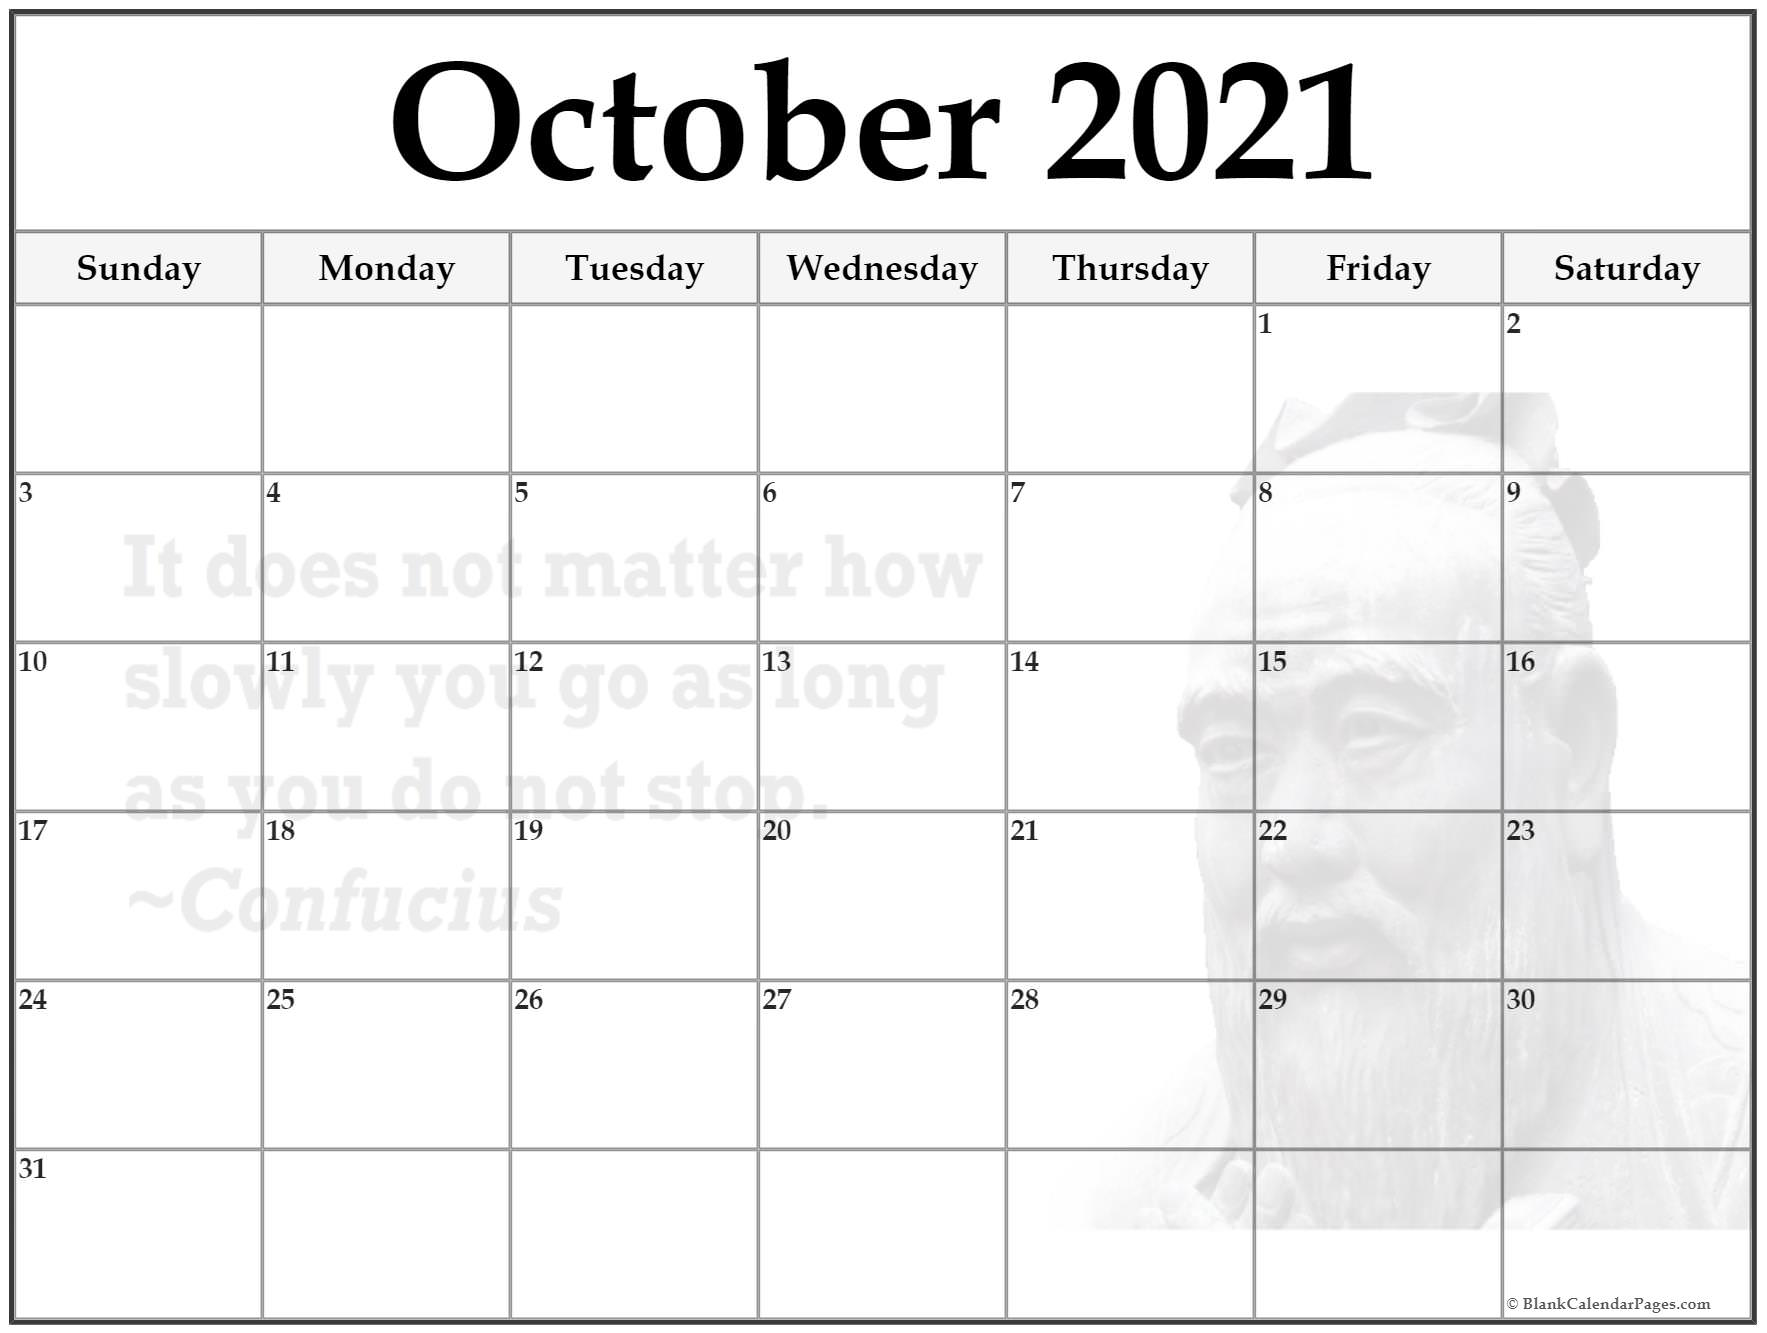 October 2021 monthly calendar template. It does not matter how slowly you go as long as you don't stop ~Confucius